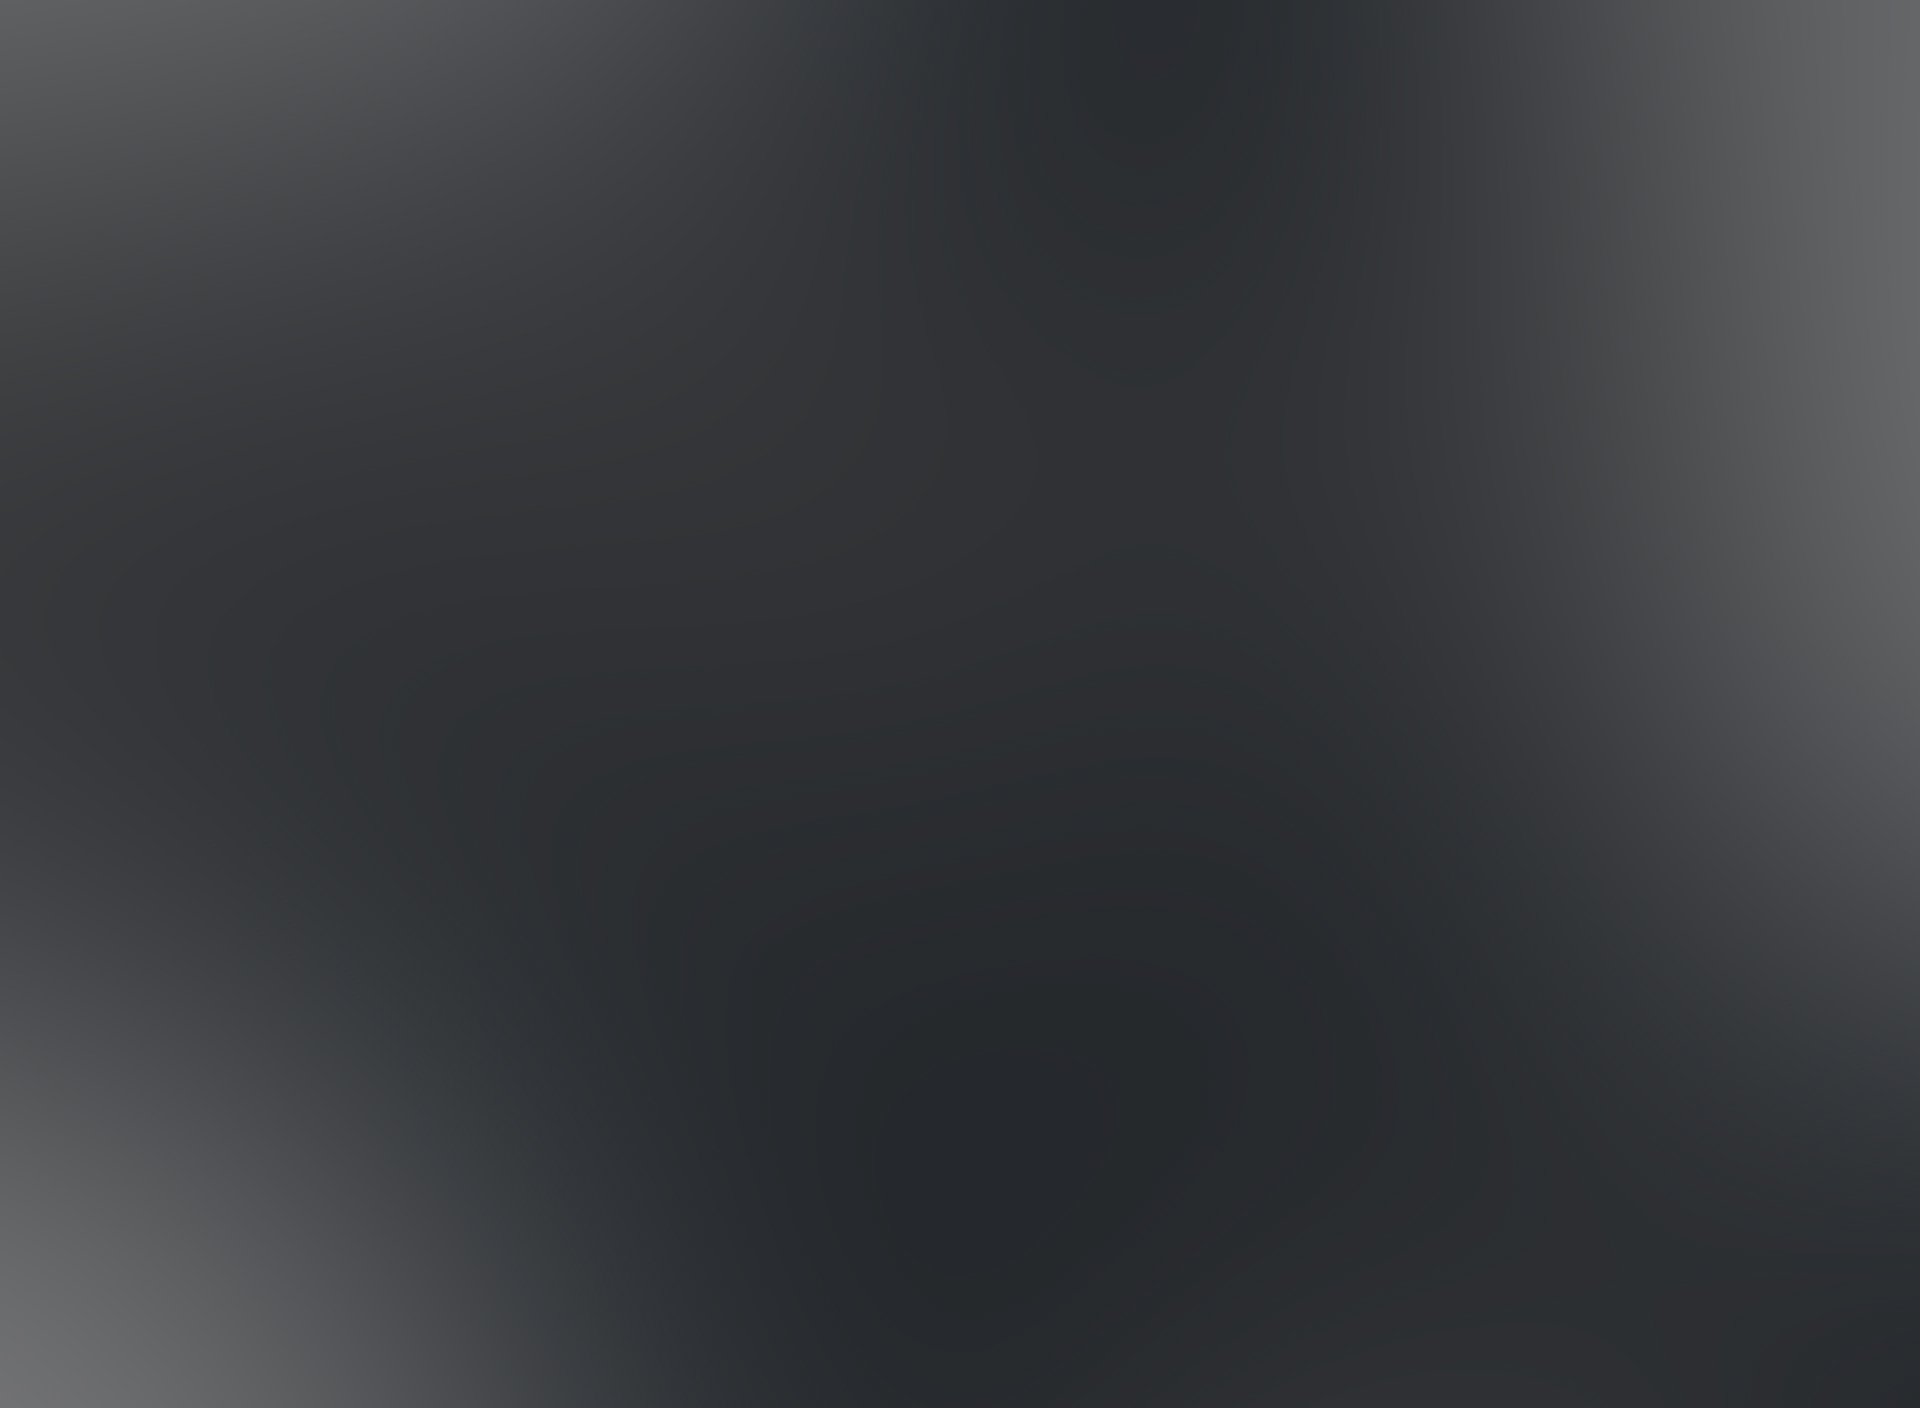 KDE_Plasma/look-and-feel/Neon-Knights-Green/contents/splash/images/background.png